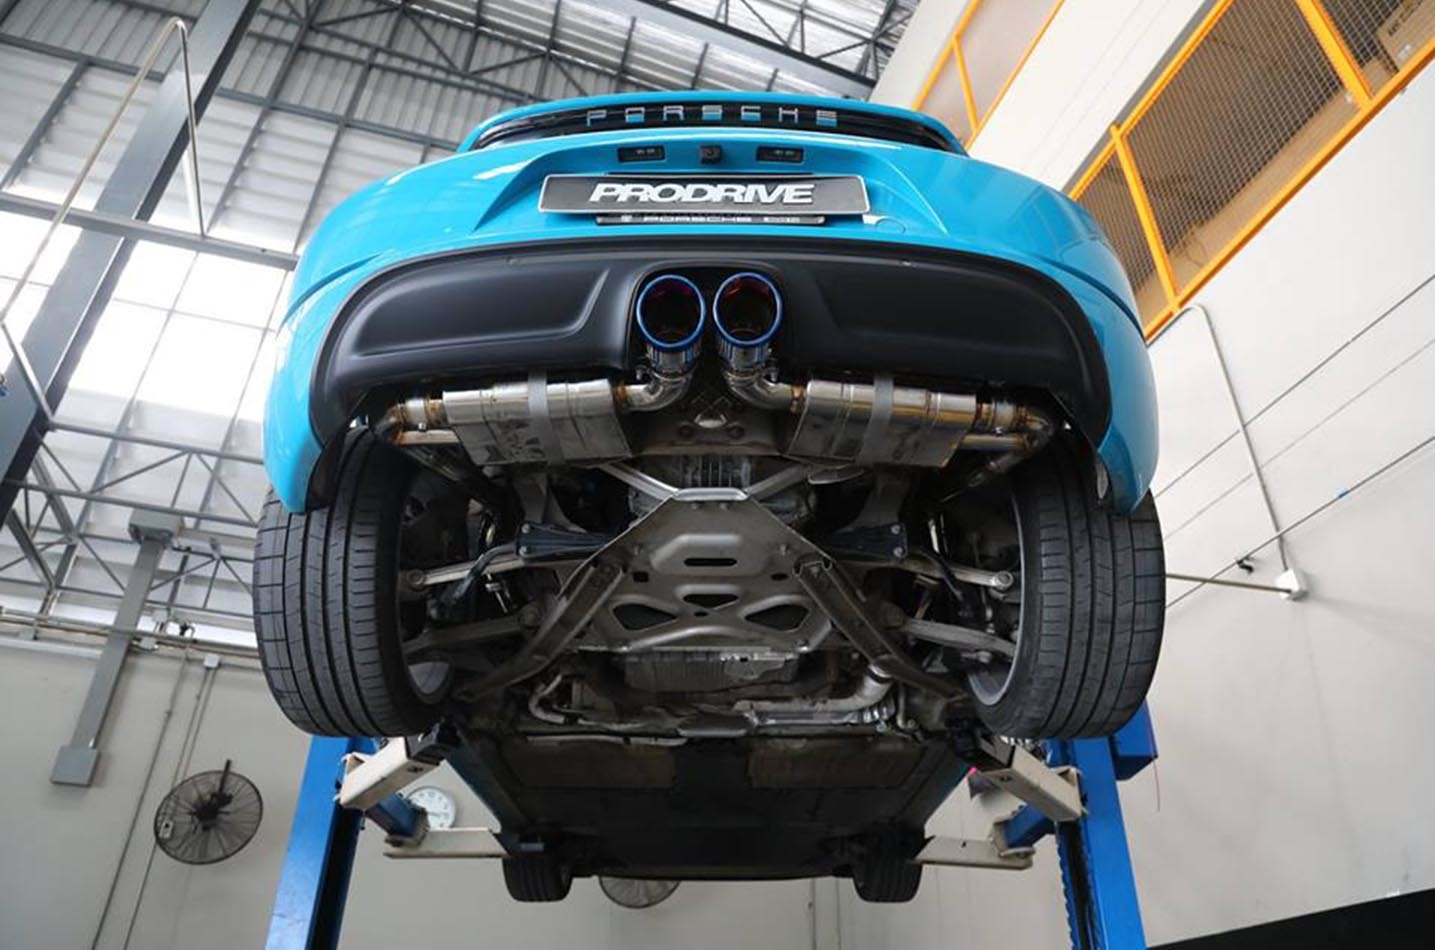 IPE exhaust system for Porsche 718 Boxster / Cayman